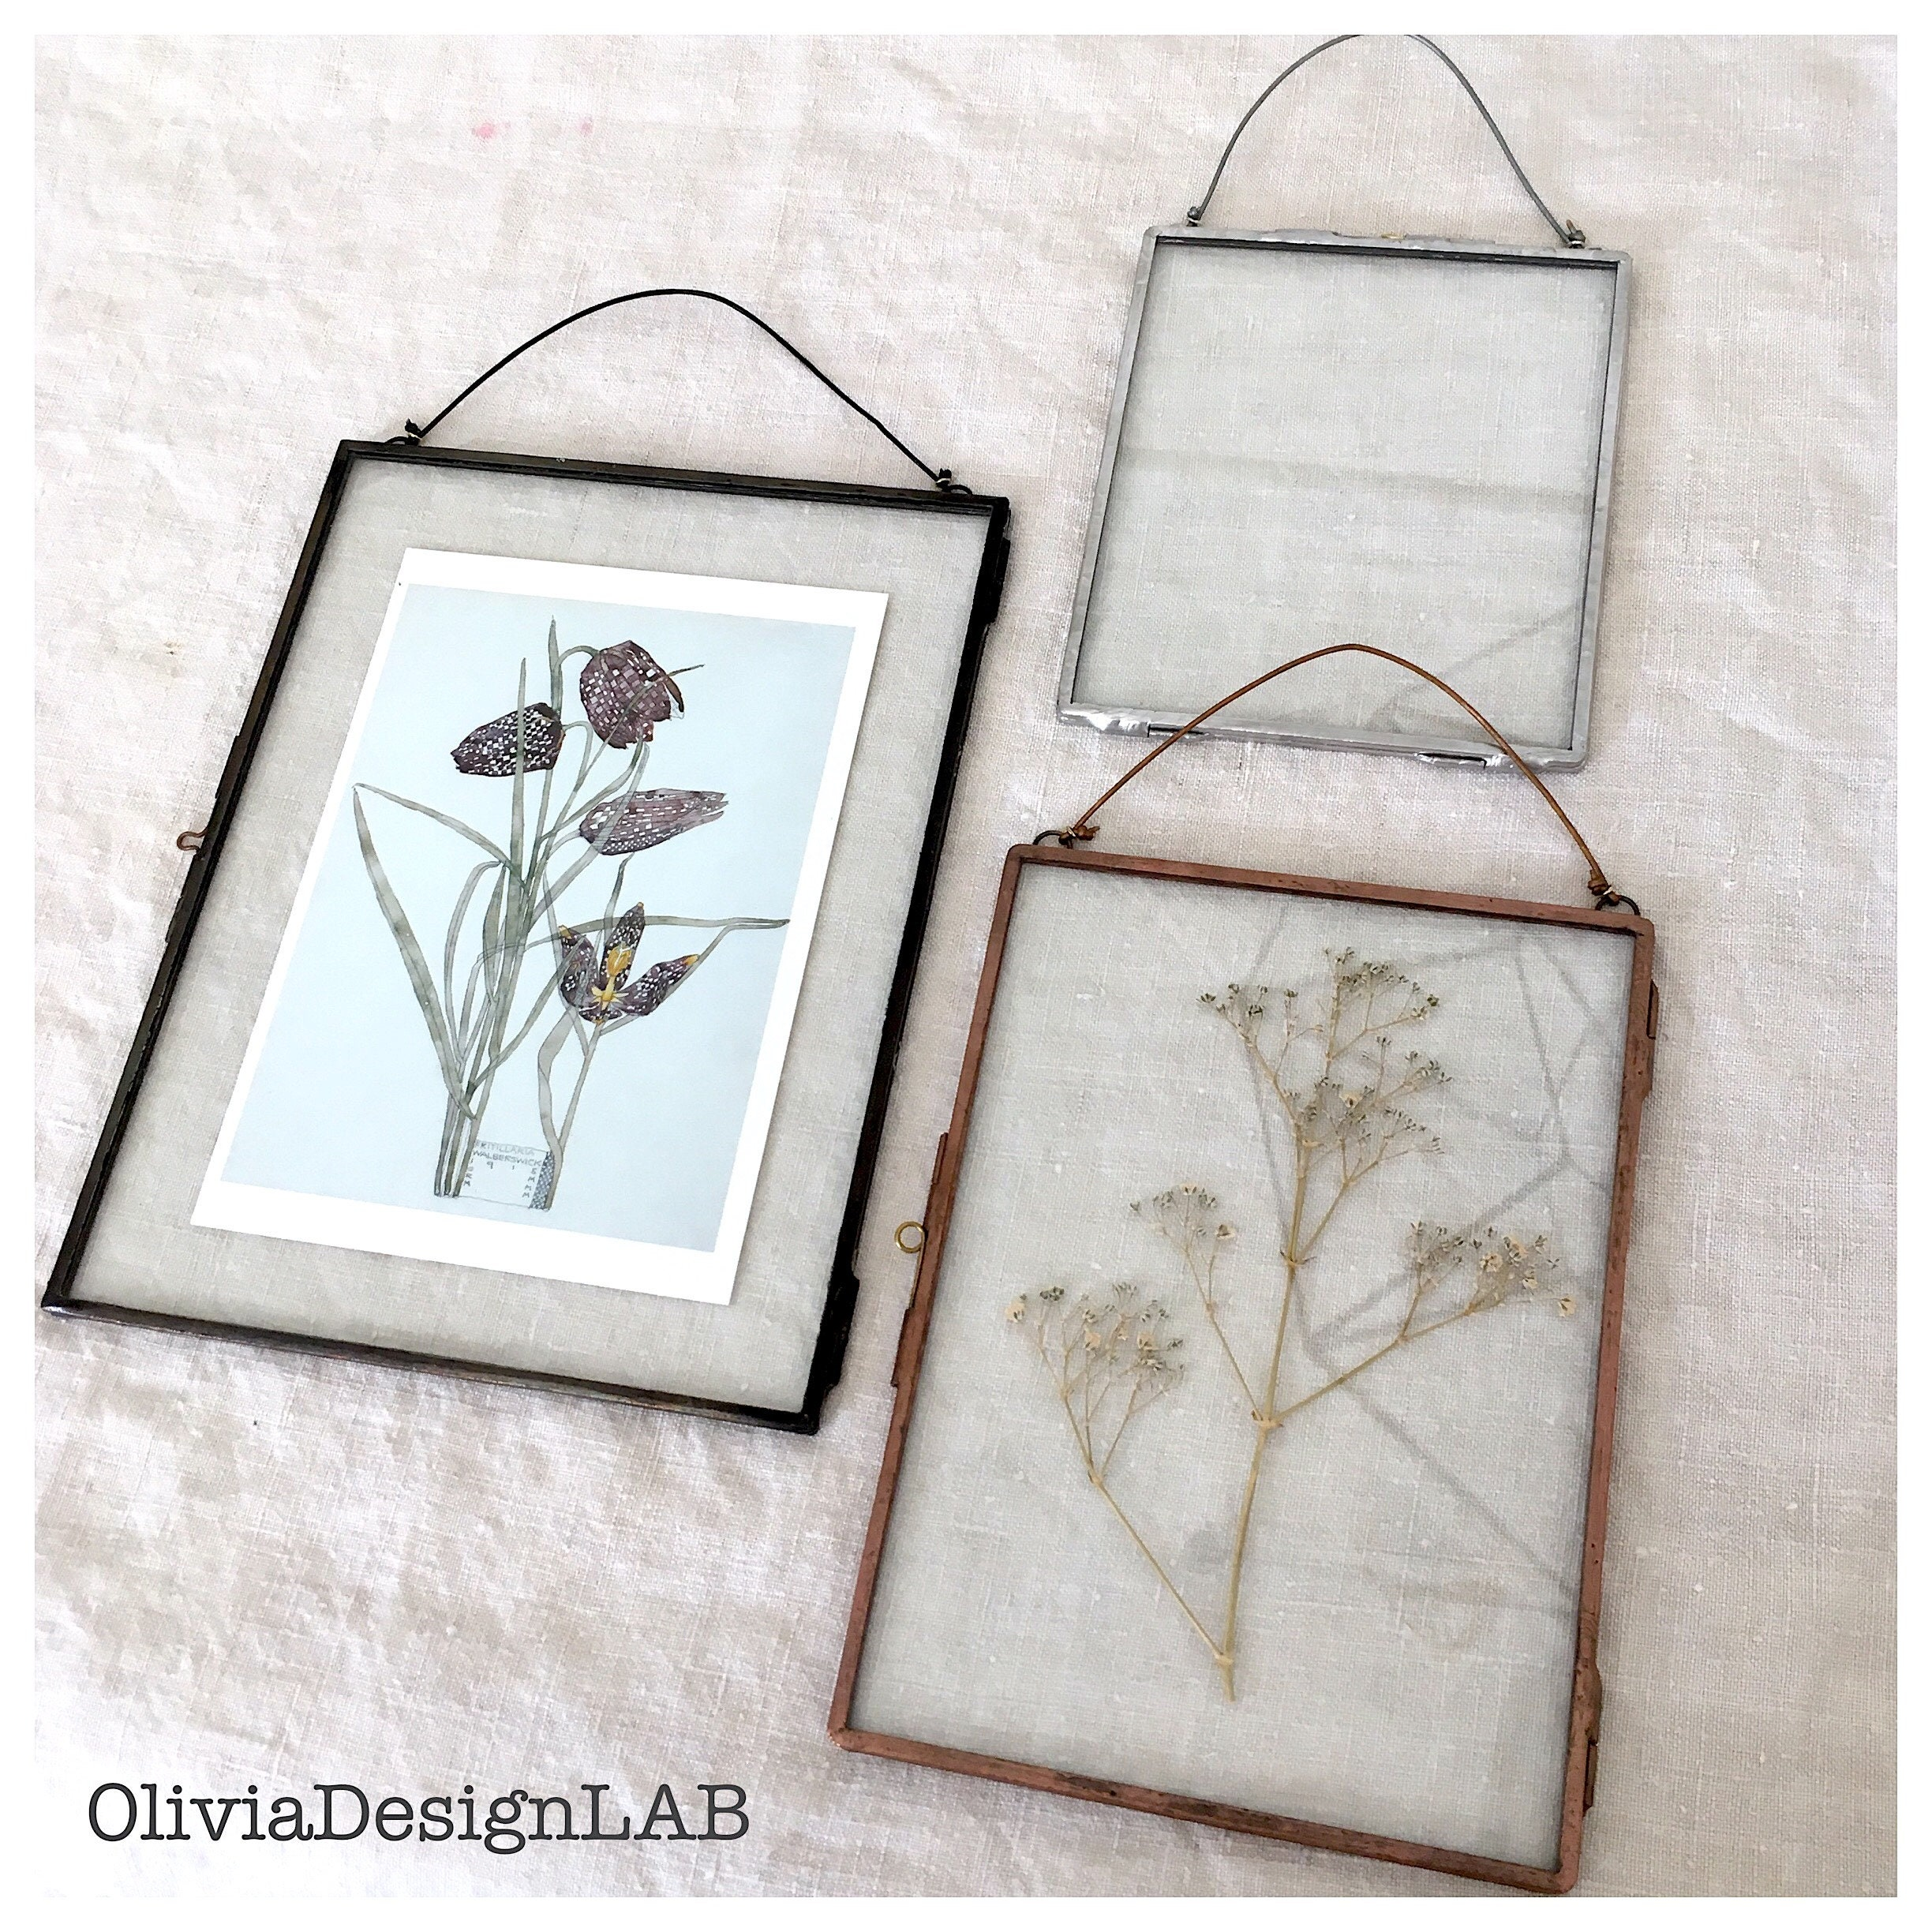 Floating glass frames MEDIUM SIZE made to measure glass frames ...